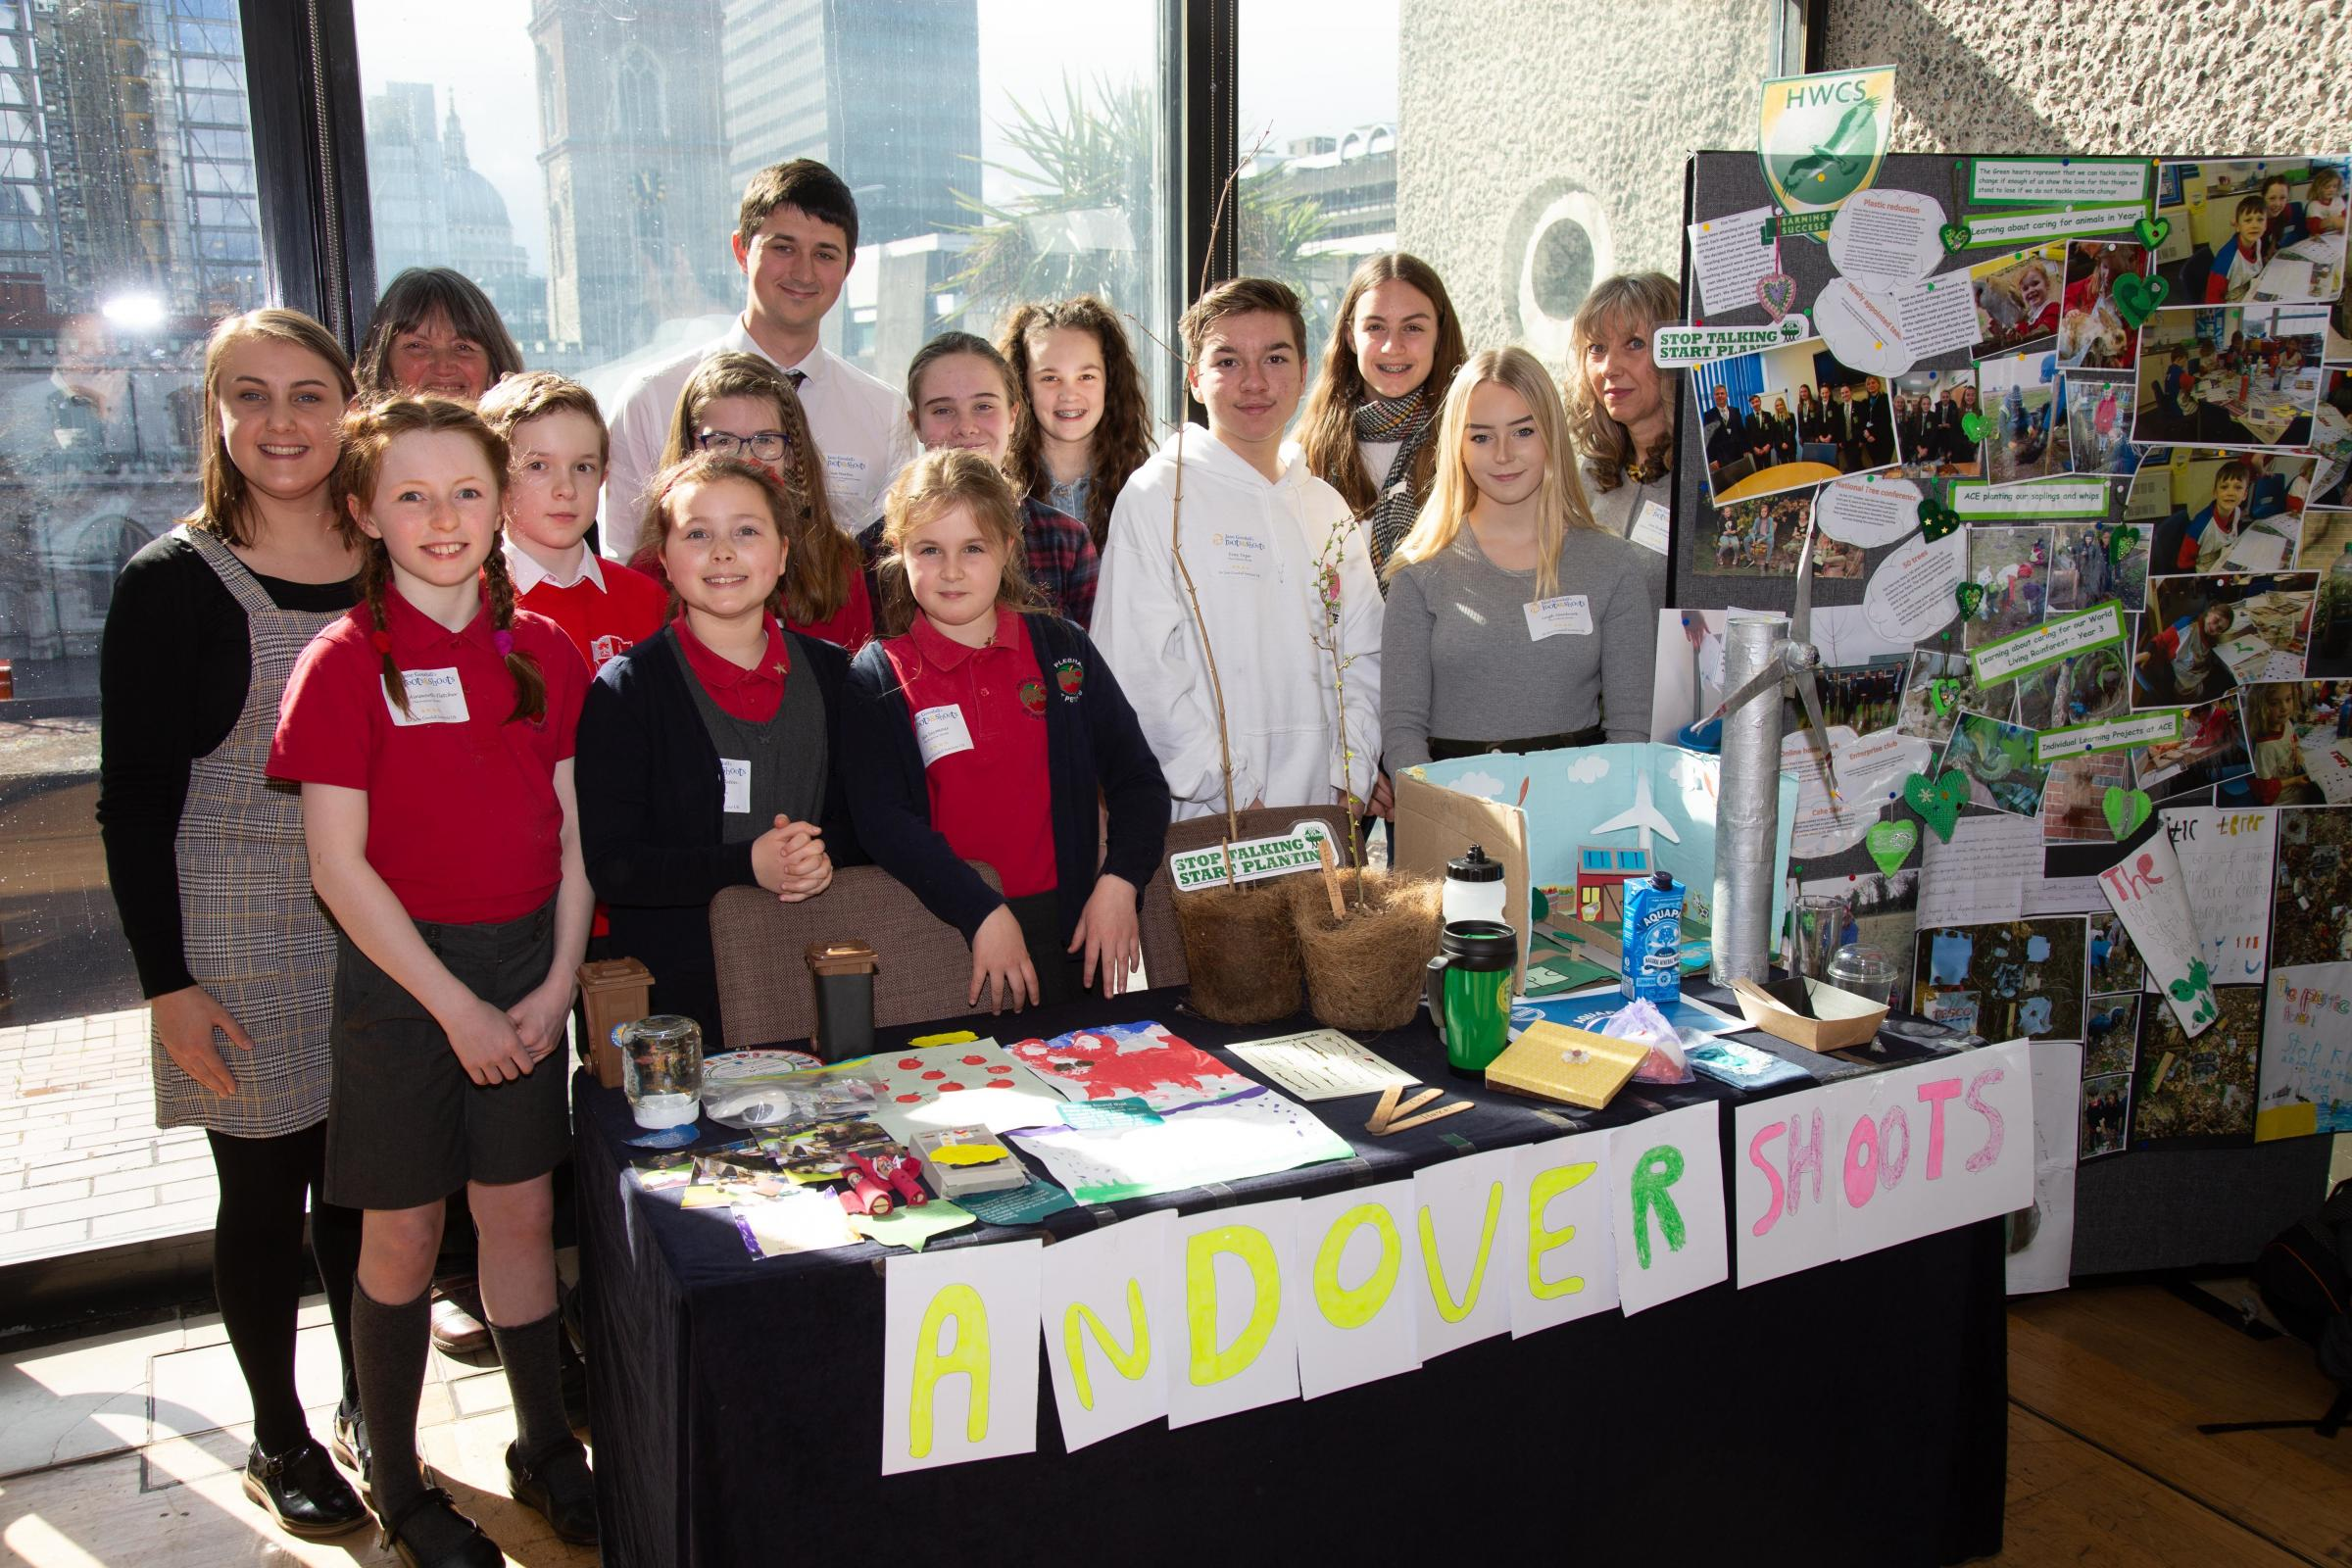 The students with their stand. Image: Burdock Photography